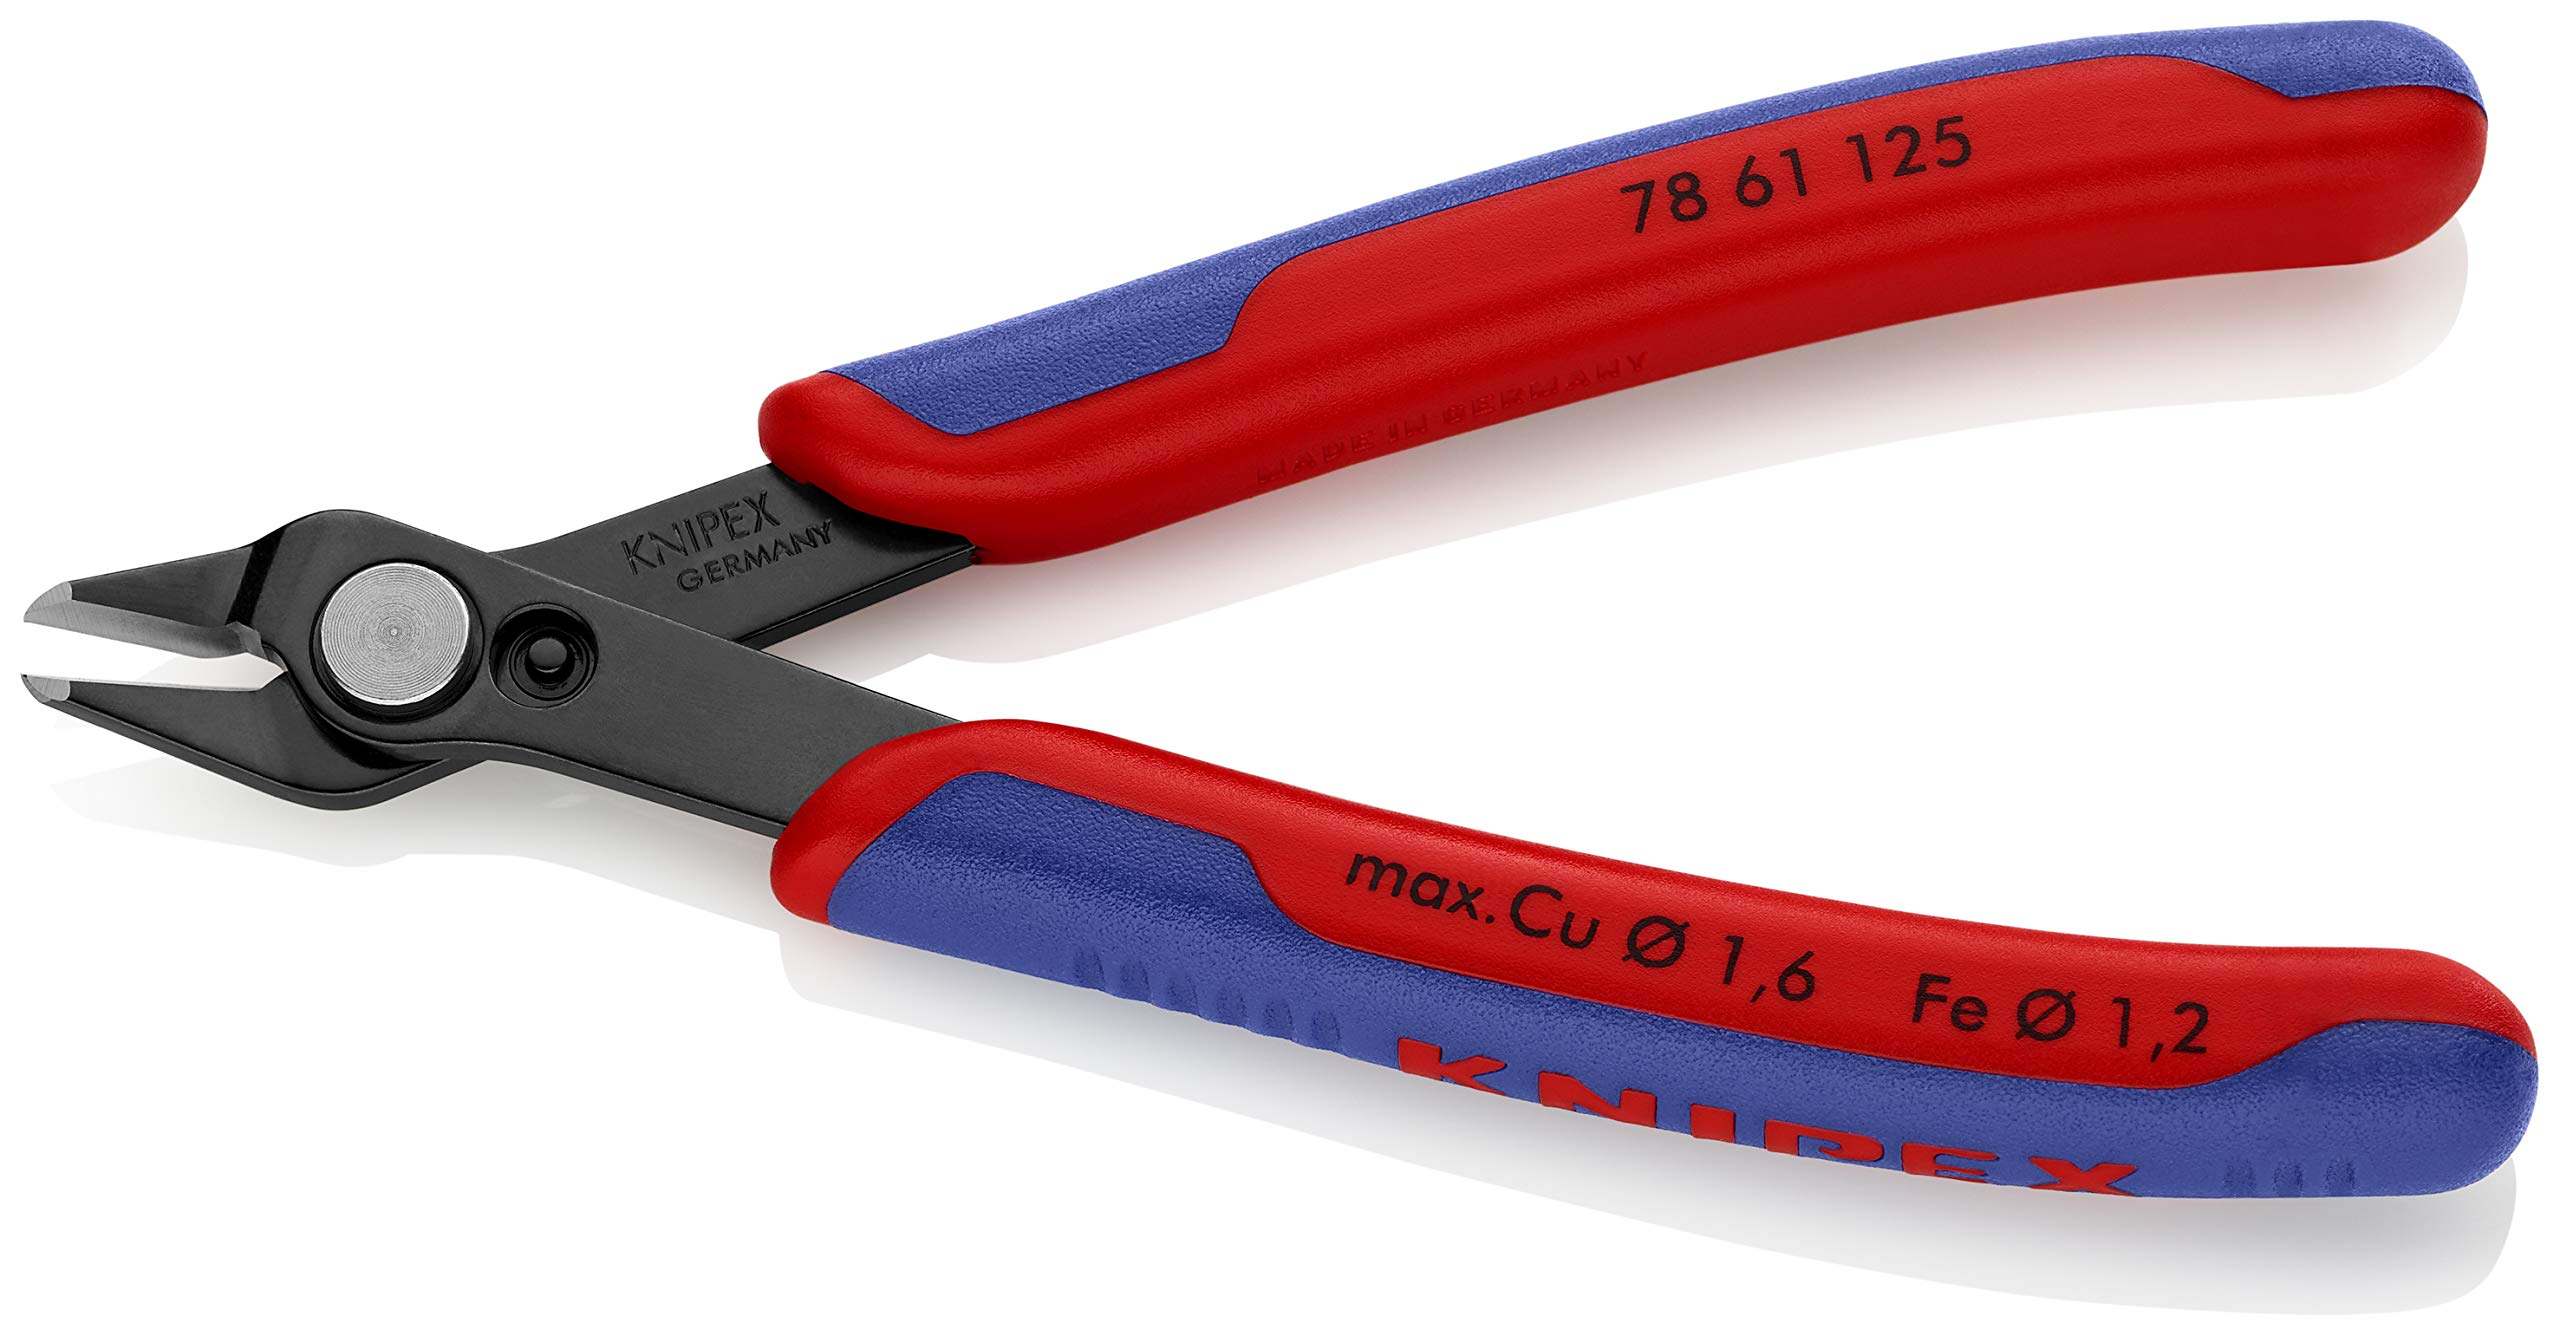 KNIPEX Tools 78 61 125 5-Inch Electronics Super Knips Comfort Grip by KNIPEX Tools